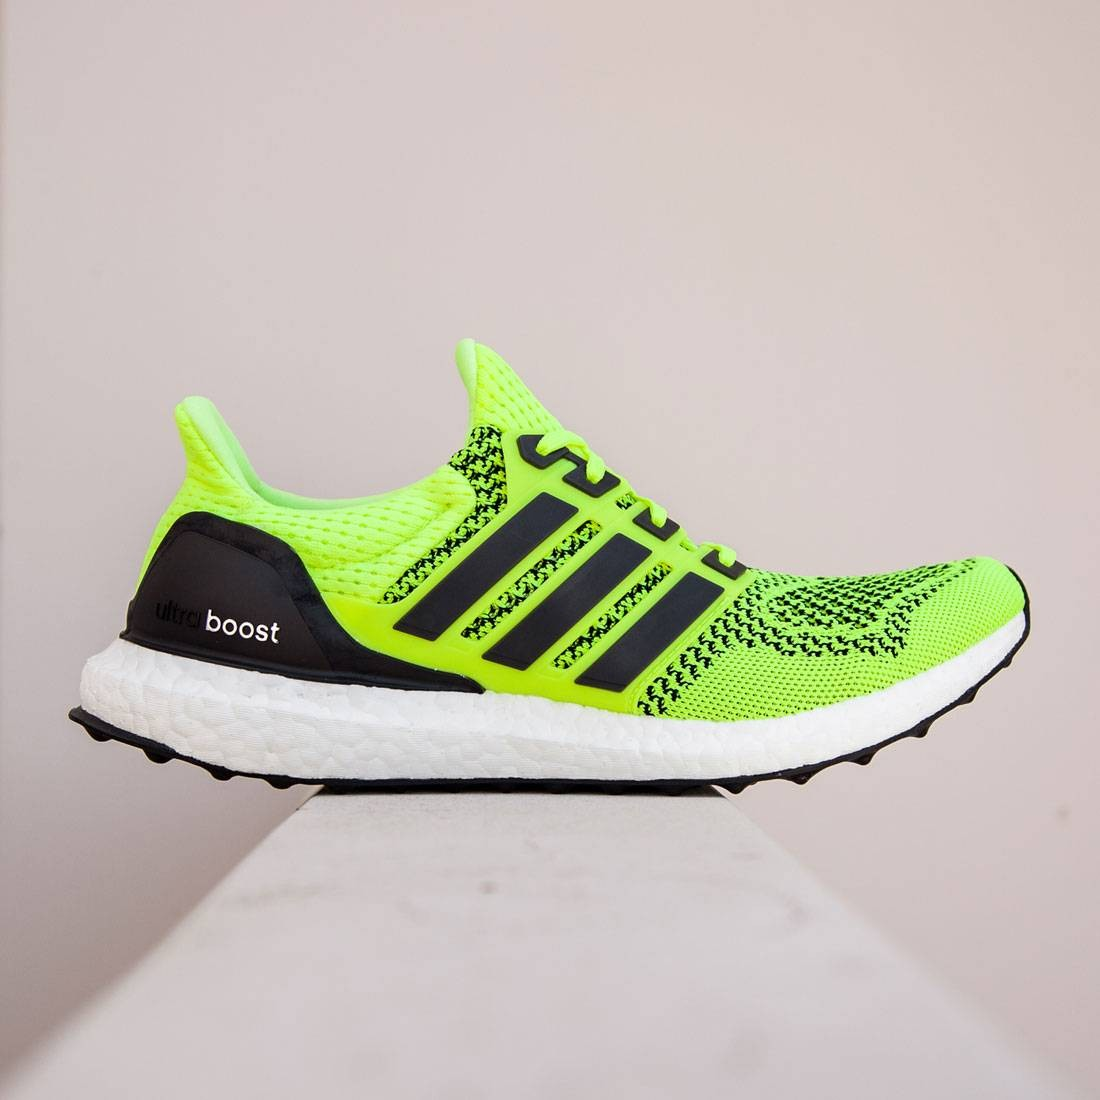 807afdc59 Adidas Men Ultra Boost yellow solar yellow core black